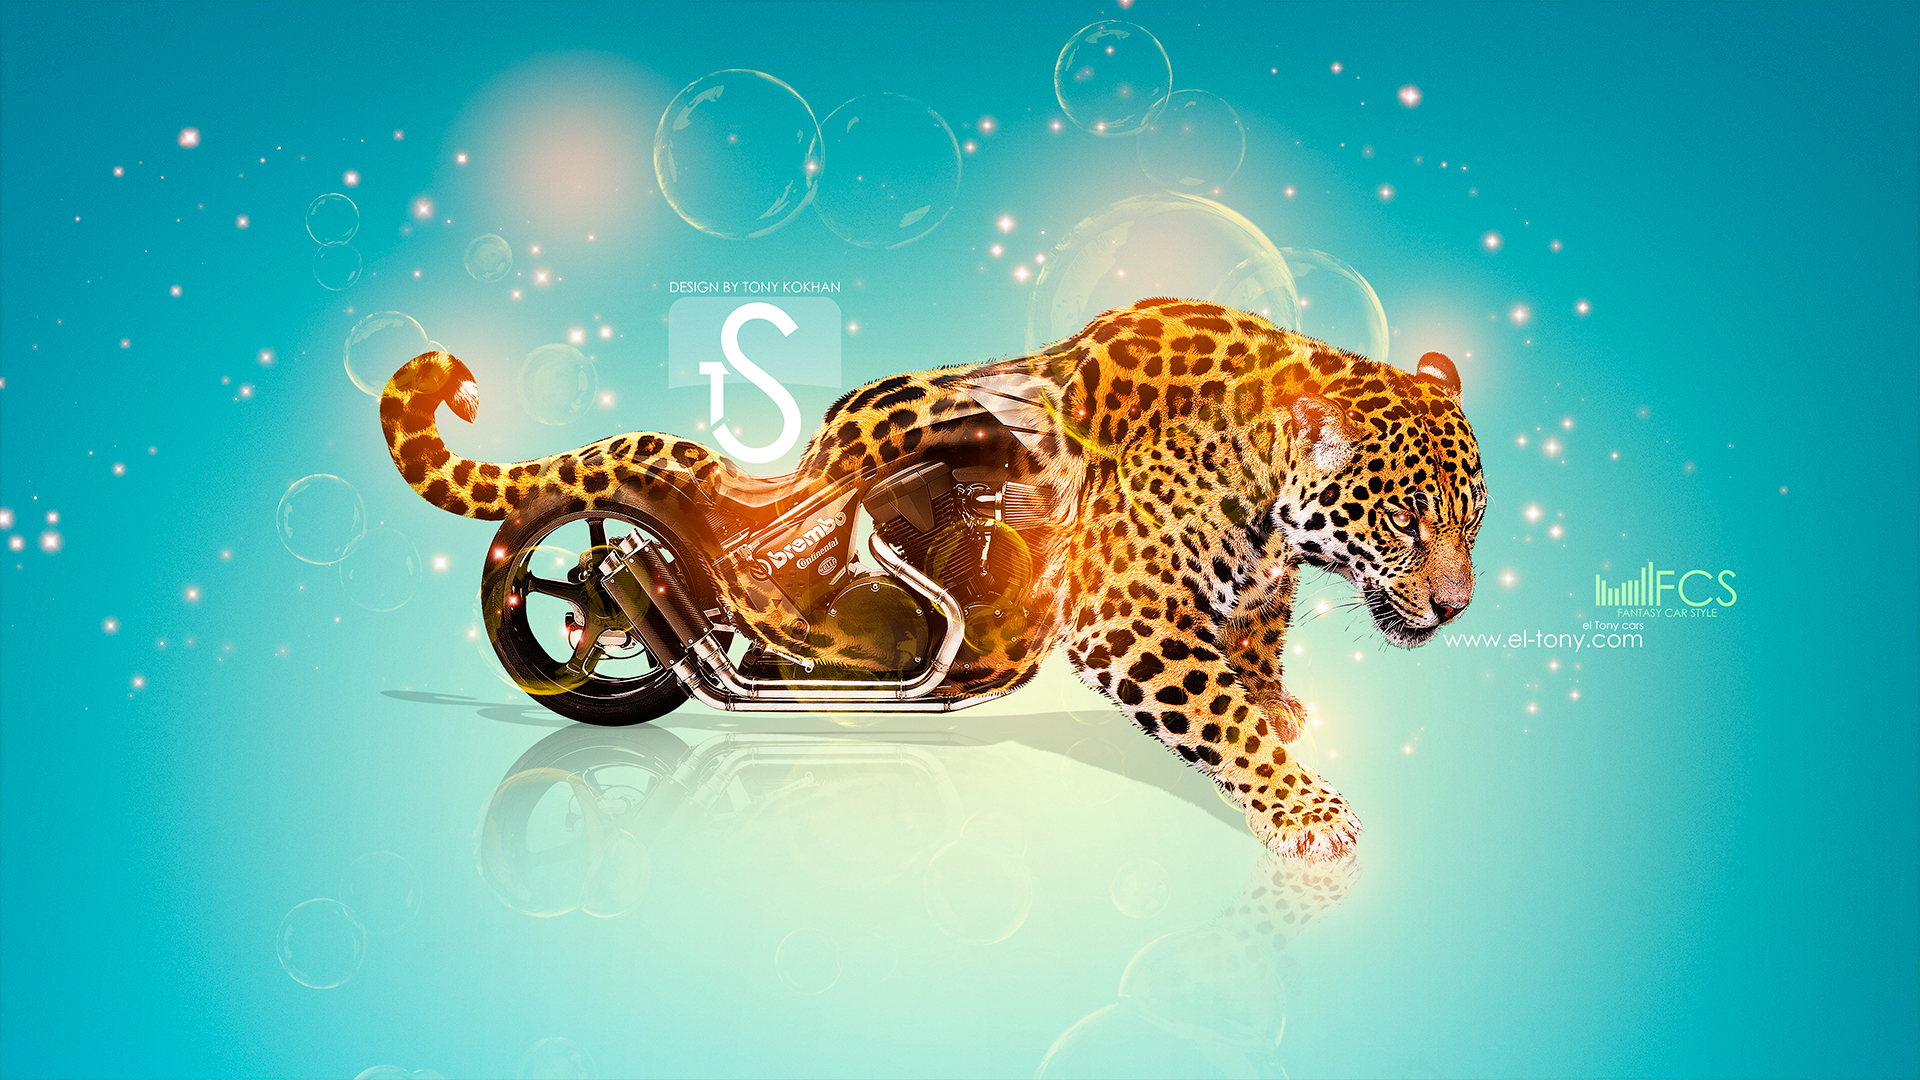 Moto Honda Switchblade Fantasy Leopard 2013 HD Wallpapers .